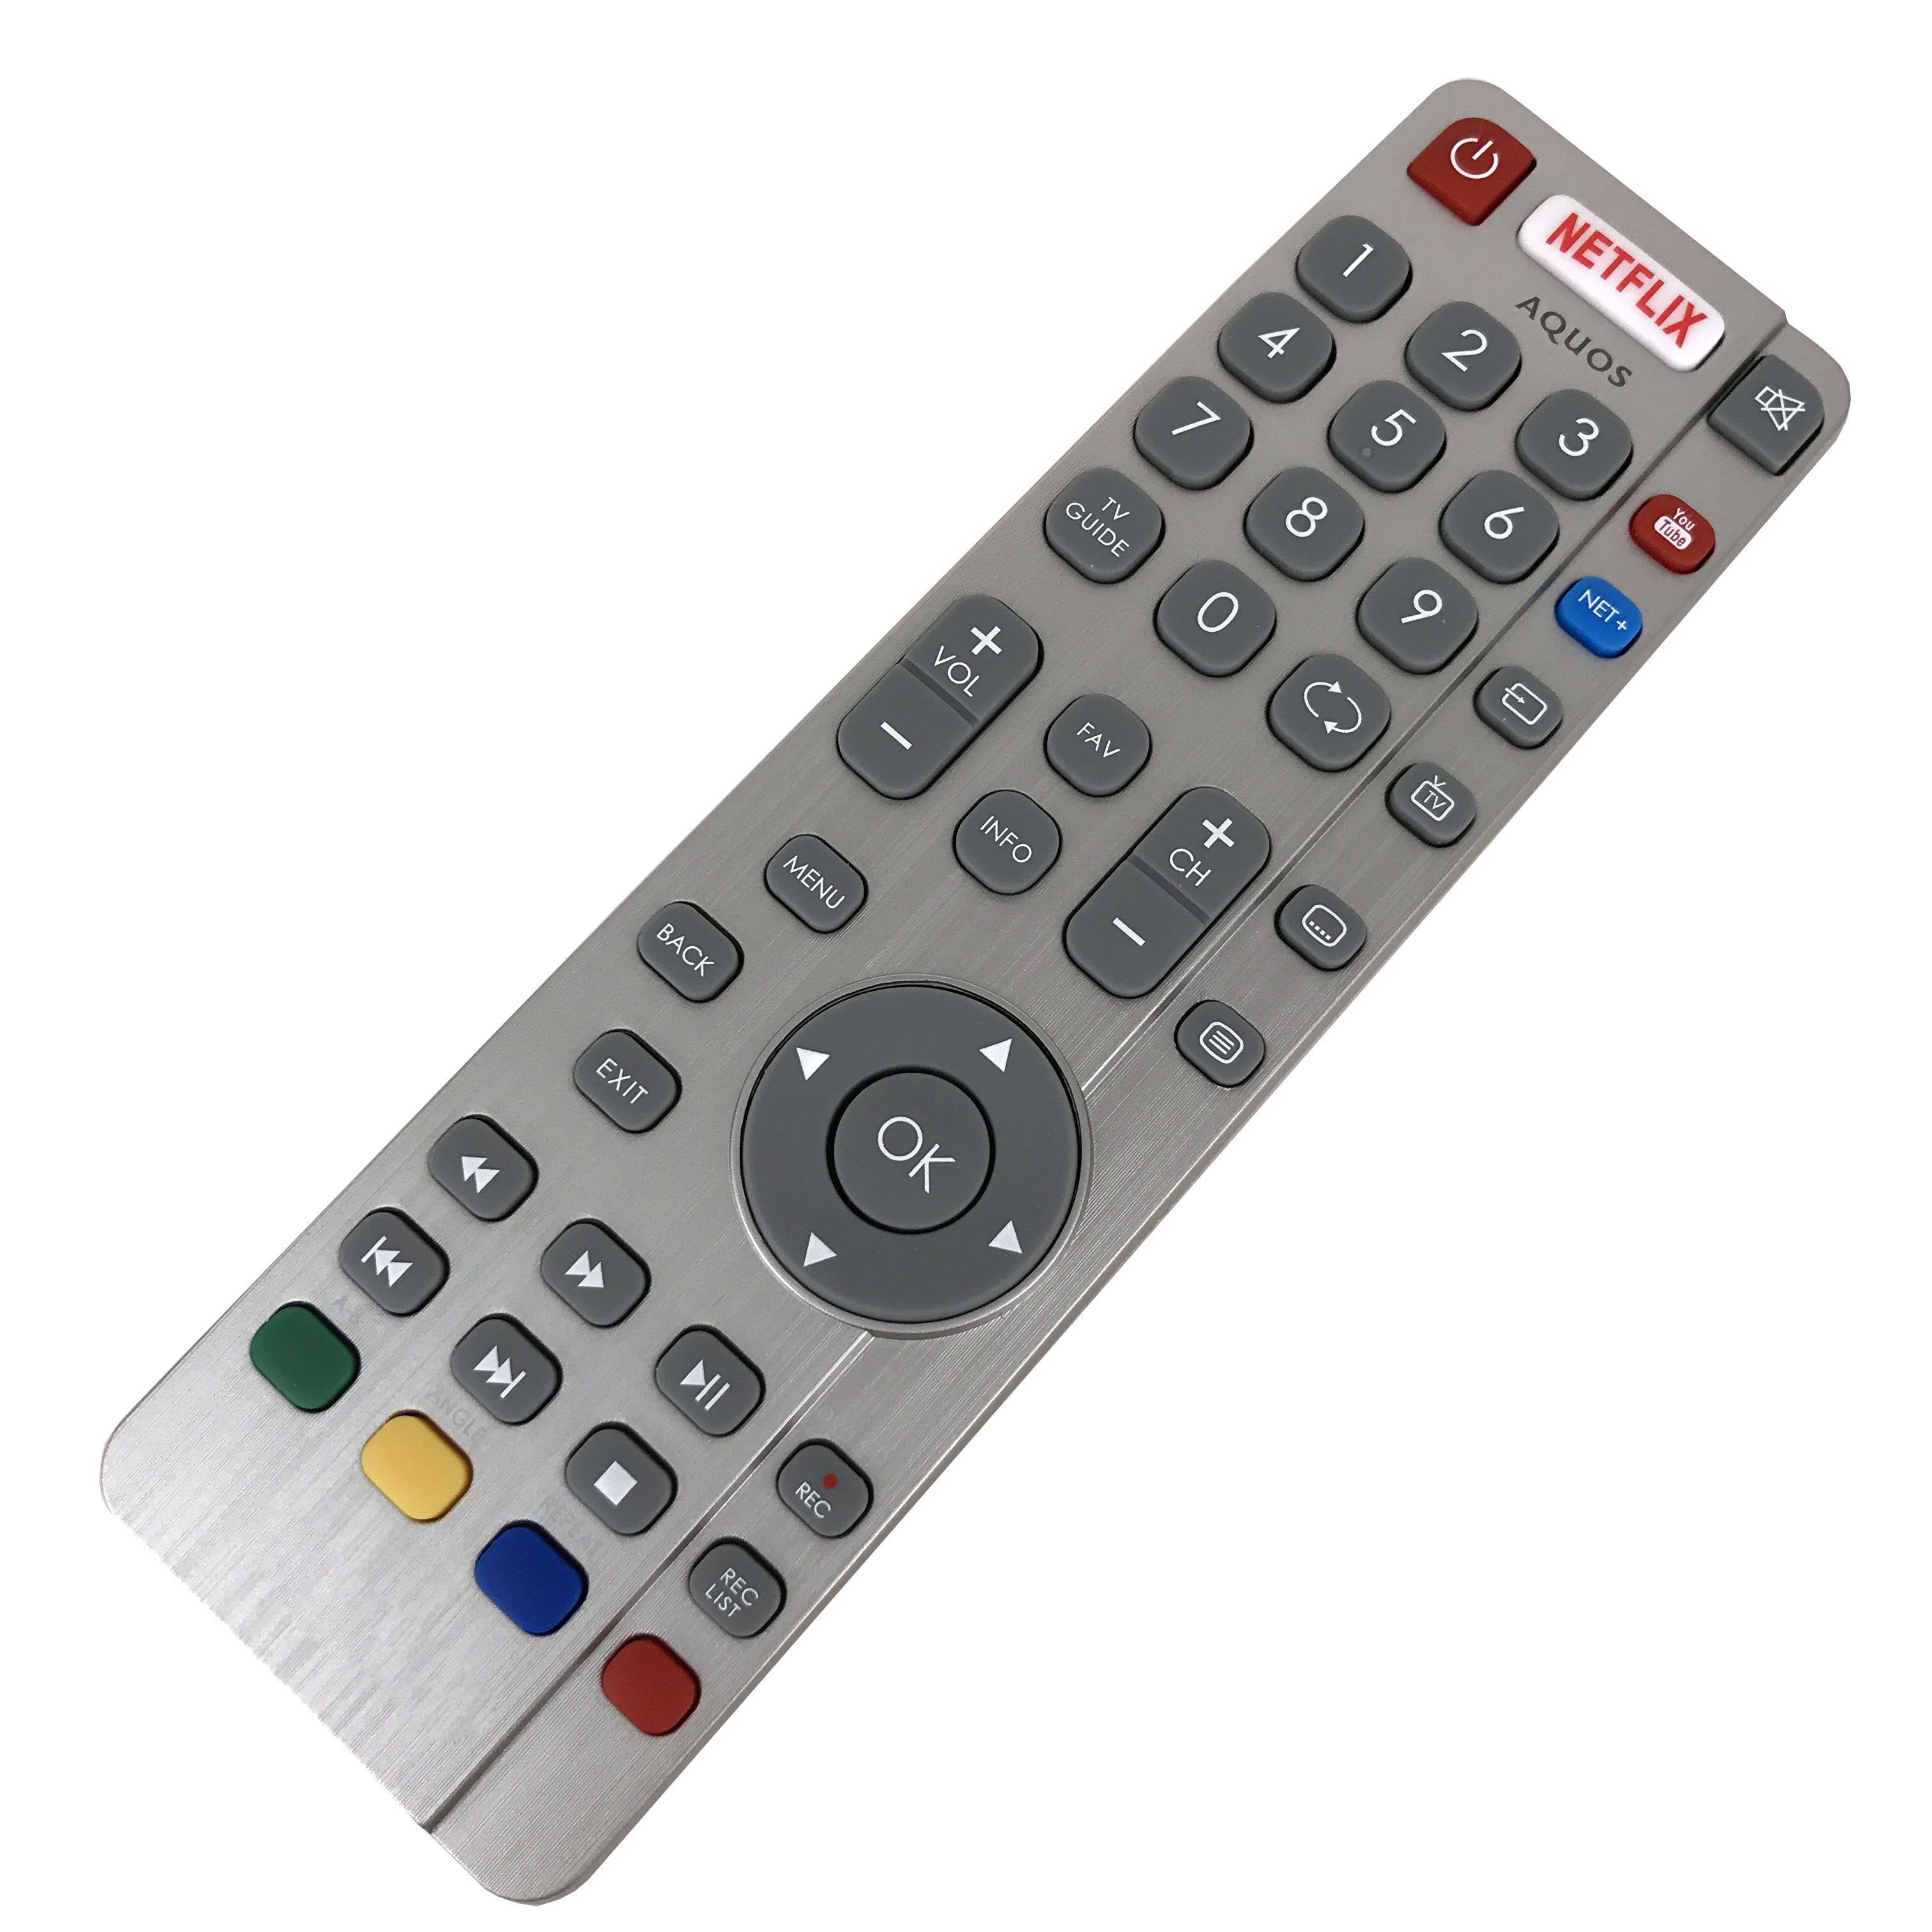 NEW Original remote control DH1903130519 For SHARP AQUOS 4K Smart LED TV LC 49CFG6452E LC49CFG6452E 49 FHD With Youtube